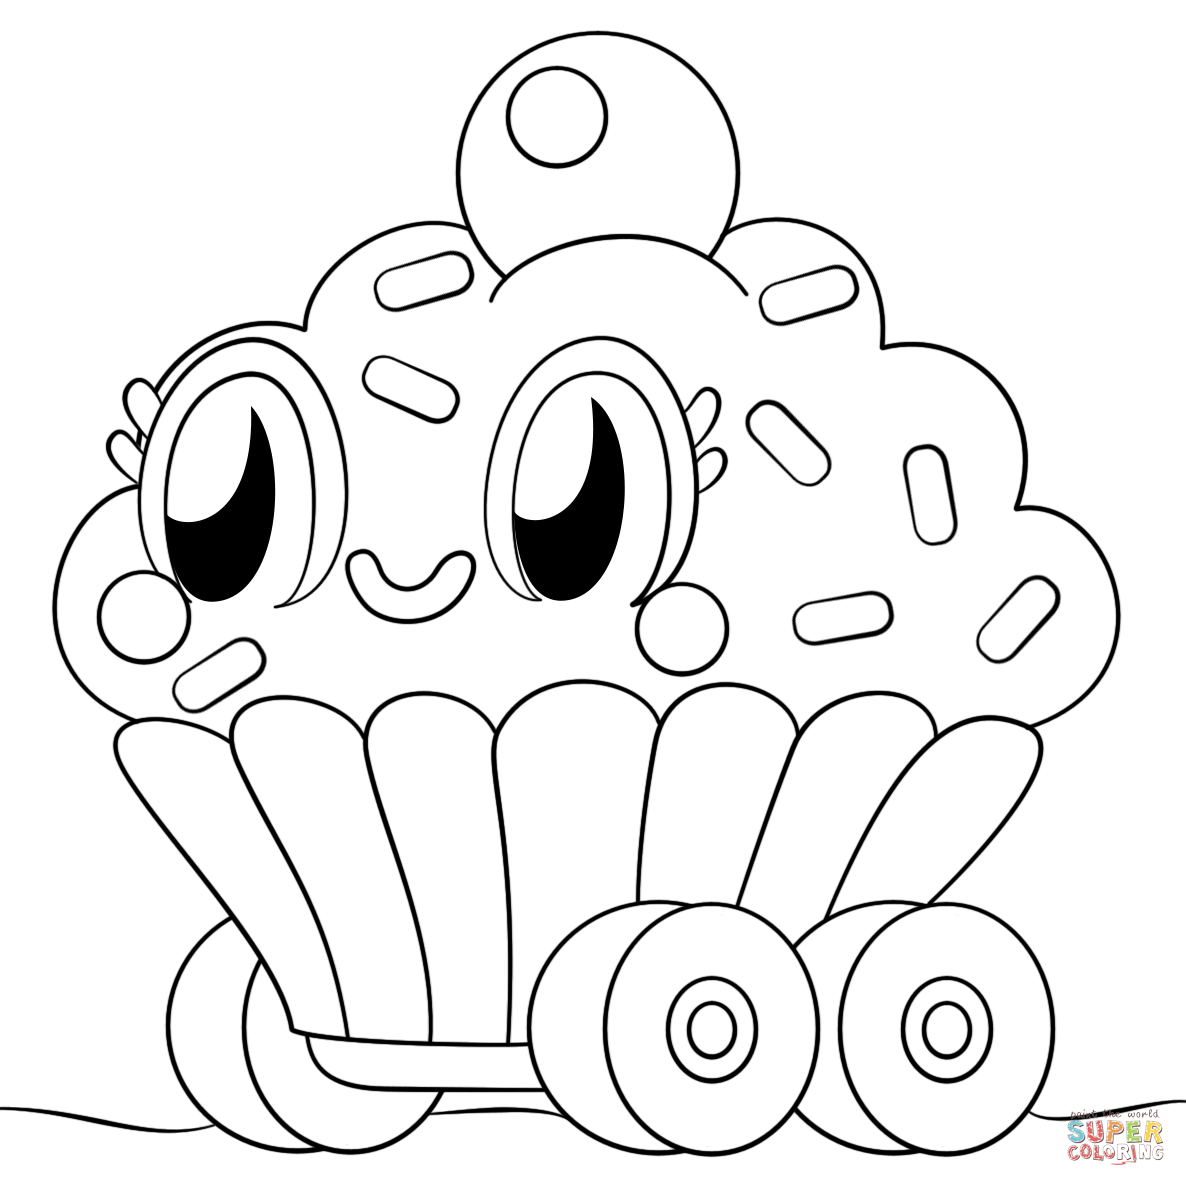 1186x1186 Moshi Monsters And Moshlings Coloring Pages Free Coloring Pages